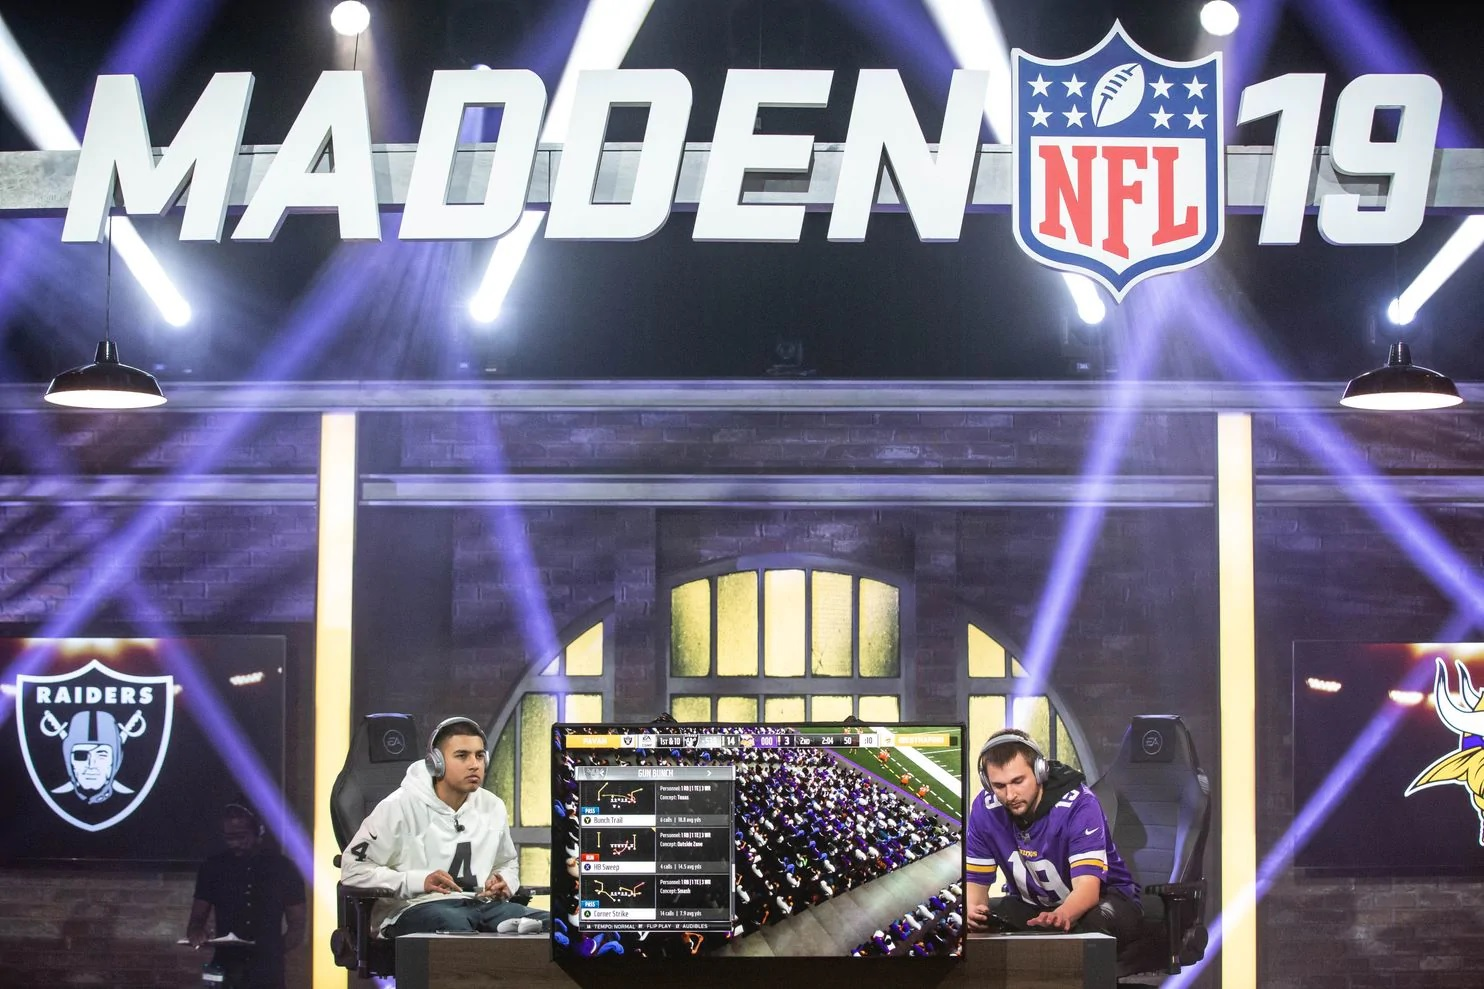 With big ambitions, and tighter security, Madden NFL esports scene moves on from Jacksonville shooting